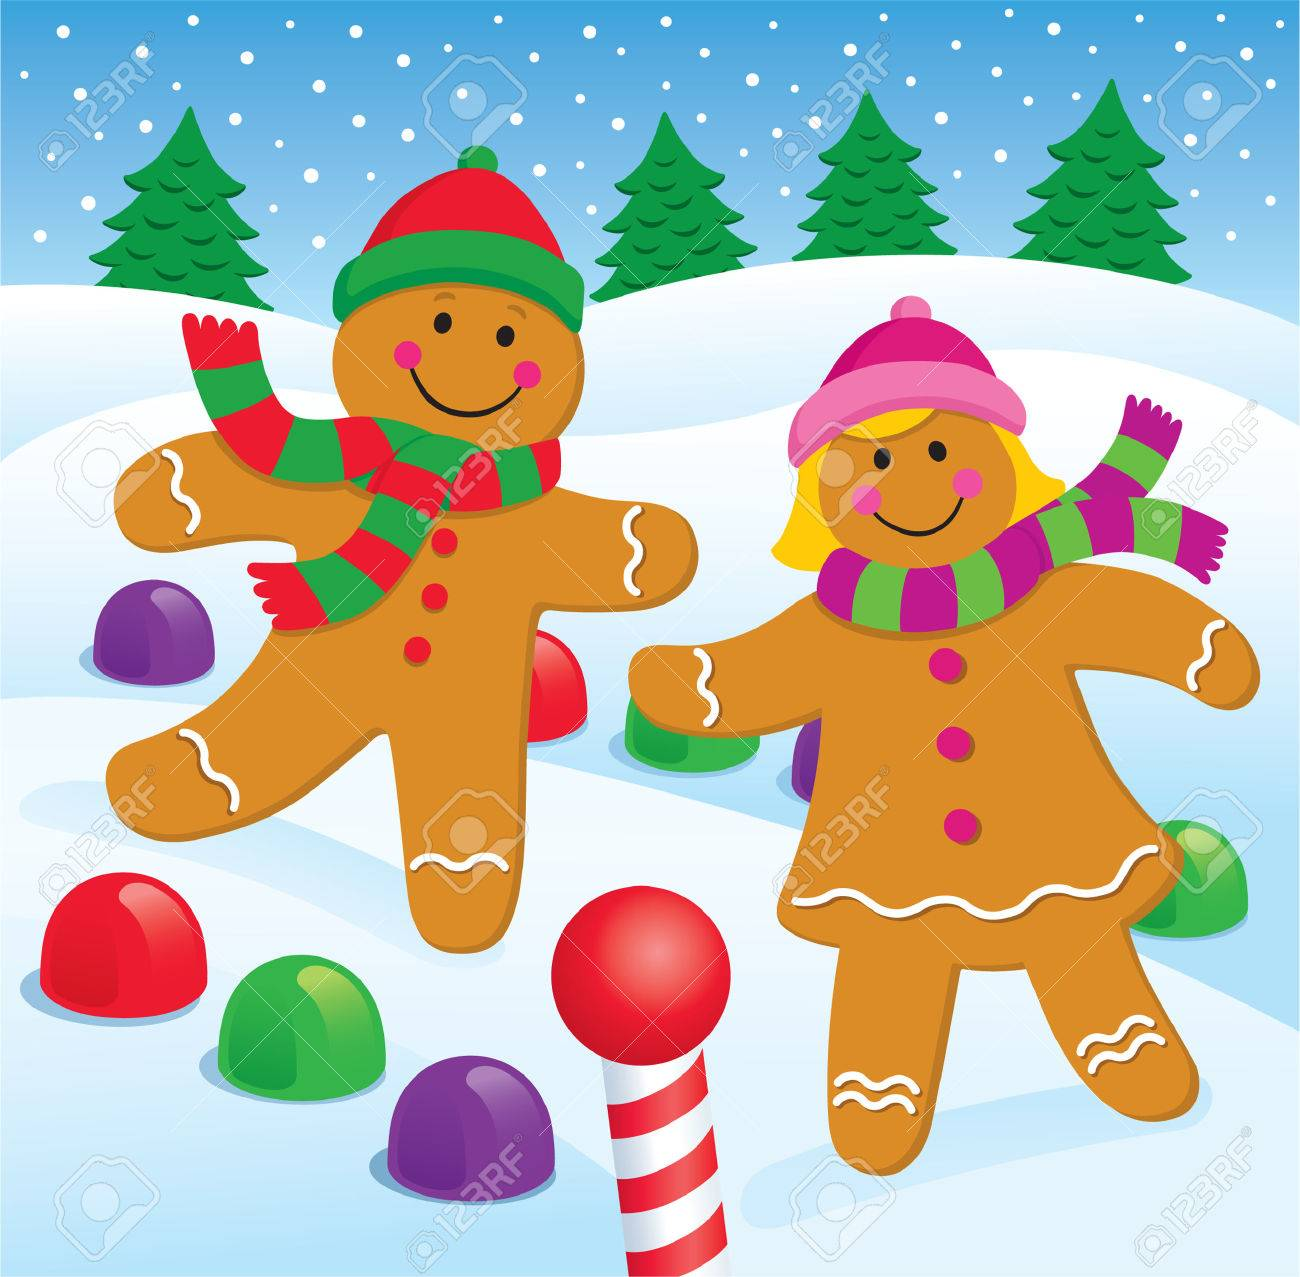 Gingerbread Boy and Girl in the Snow.